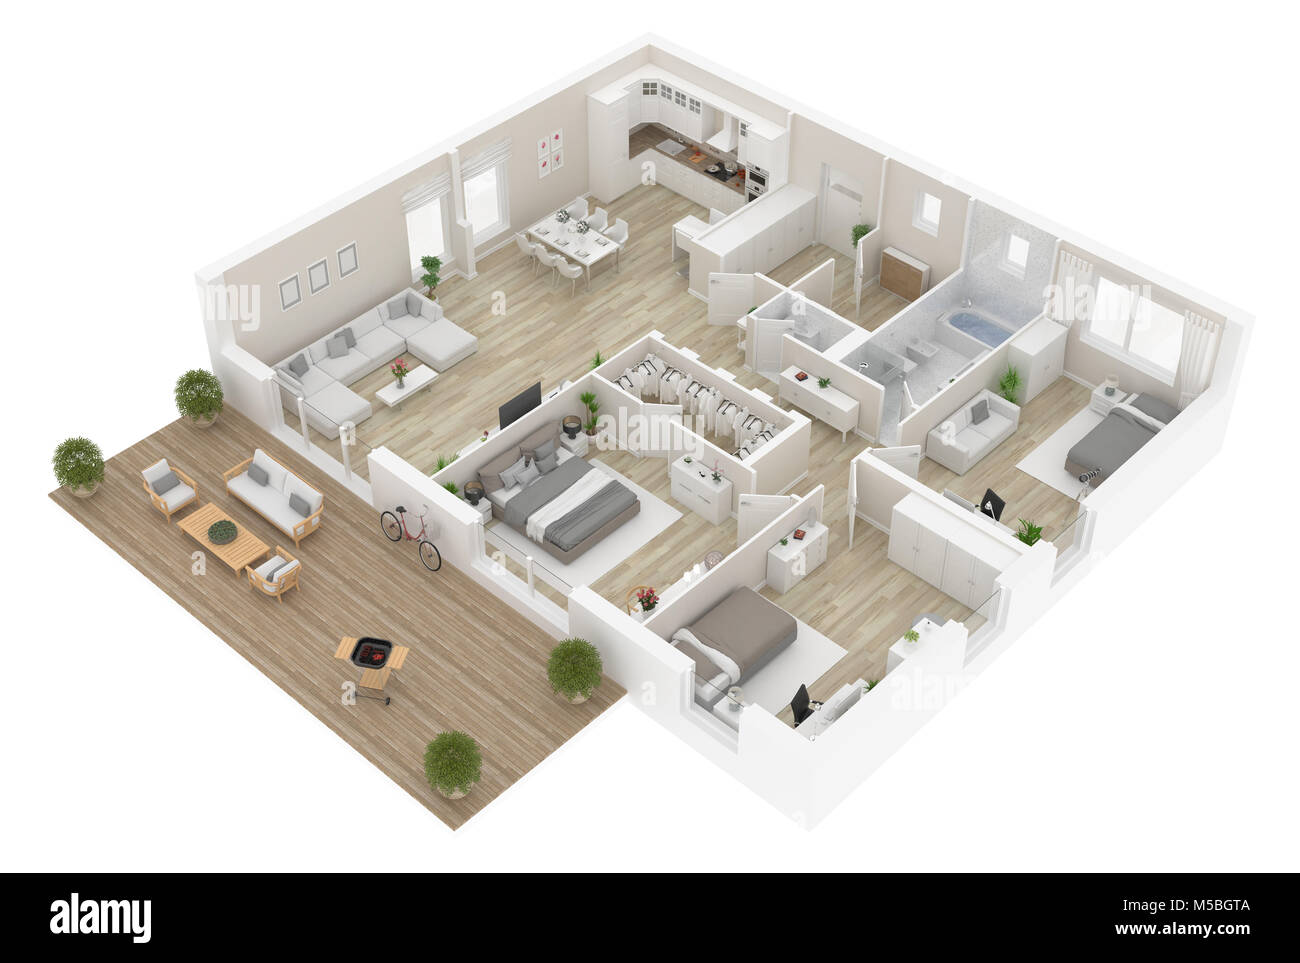 Floor Plan Top View Apartment Interior Isolated On White Background 3D Render